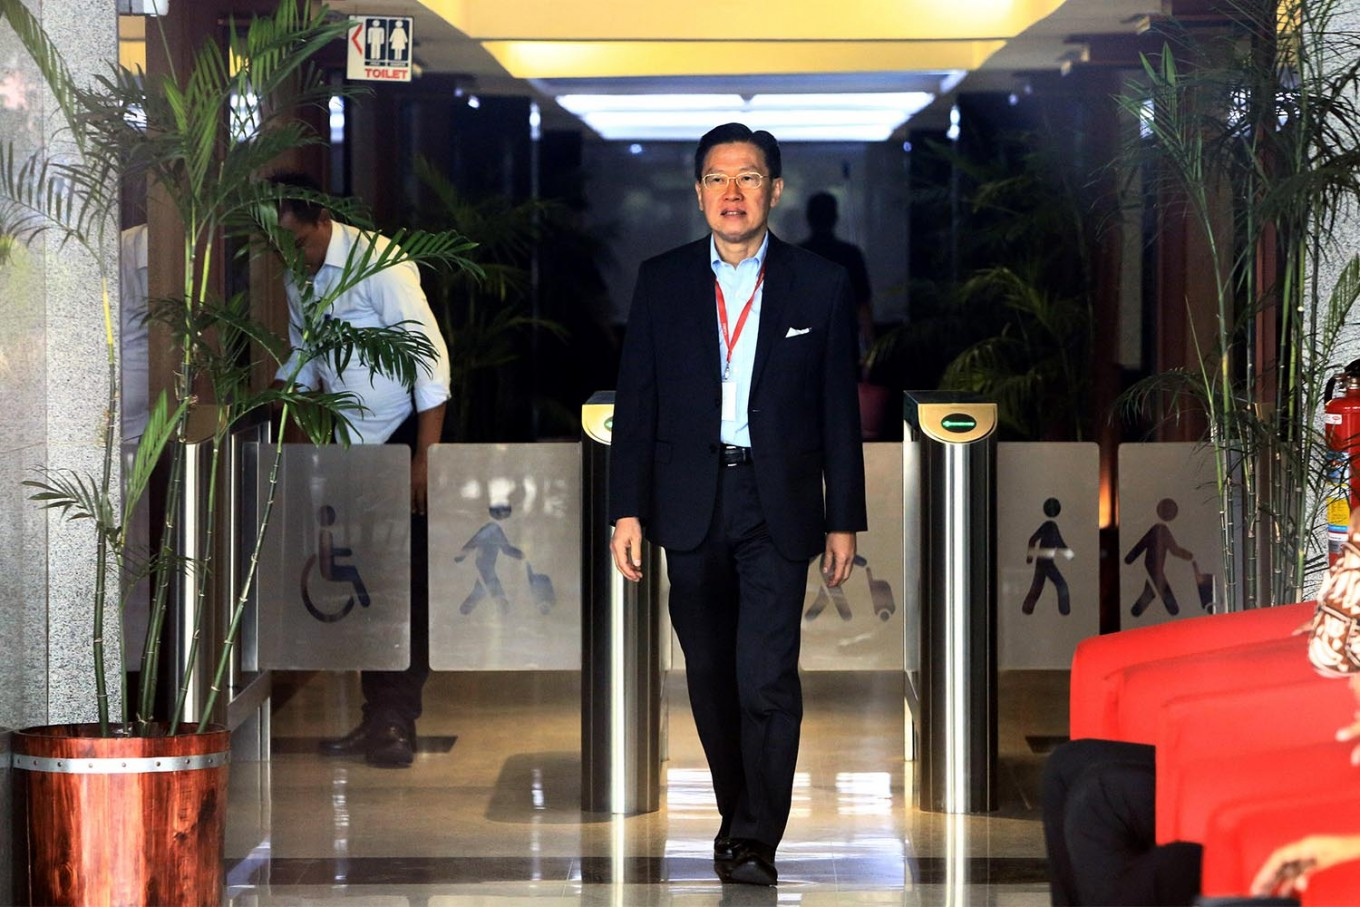 Lippo Group CEO James Riady arrives at the Corruption Eradication Commission (KPK) office in Jakarta on Tuesday, October 30, 2018. James was questioned in connection with the bribery case concerning the Meikarta mega development project in Bekasi, West Java. JP/Dhoni Setiawan